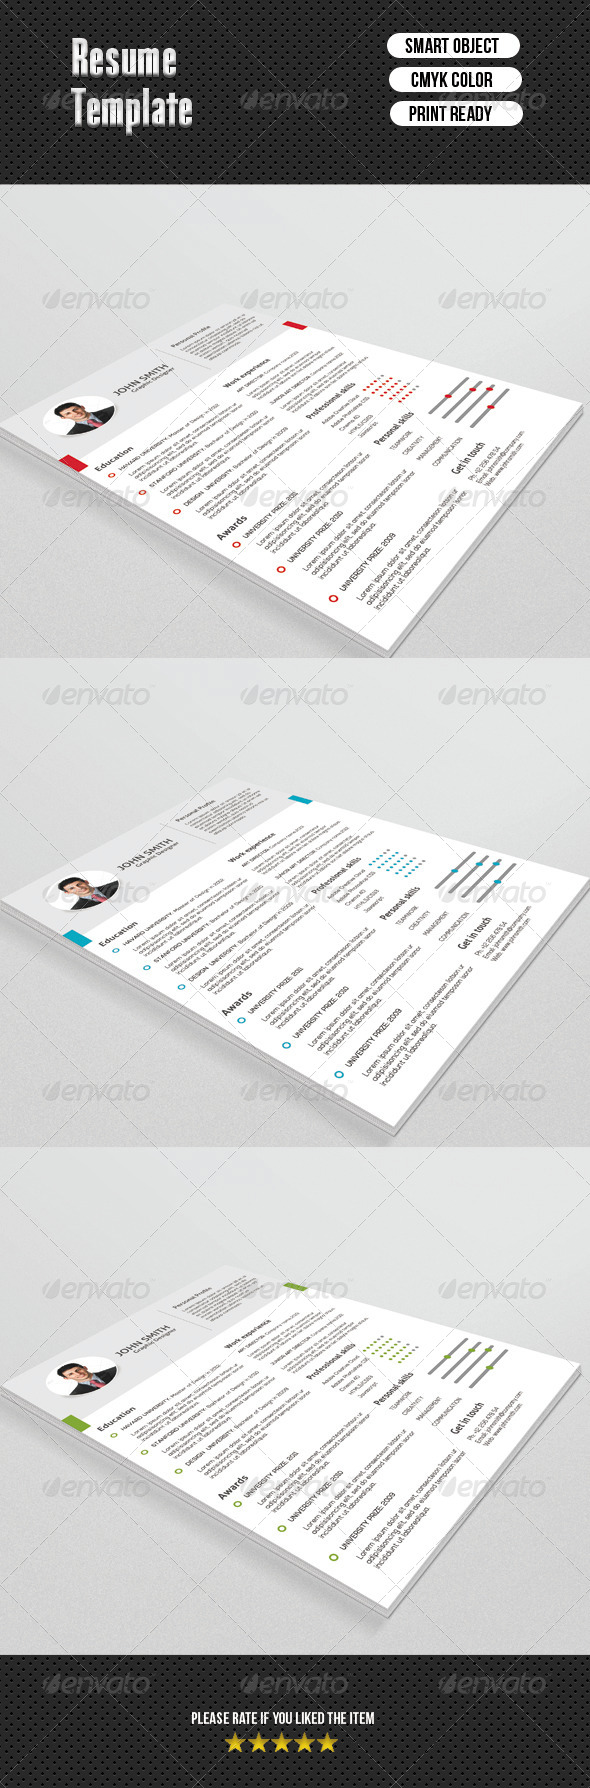 Fresh Resume Template - Resumes Stationery